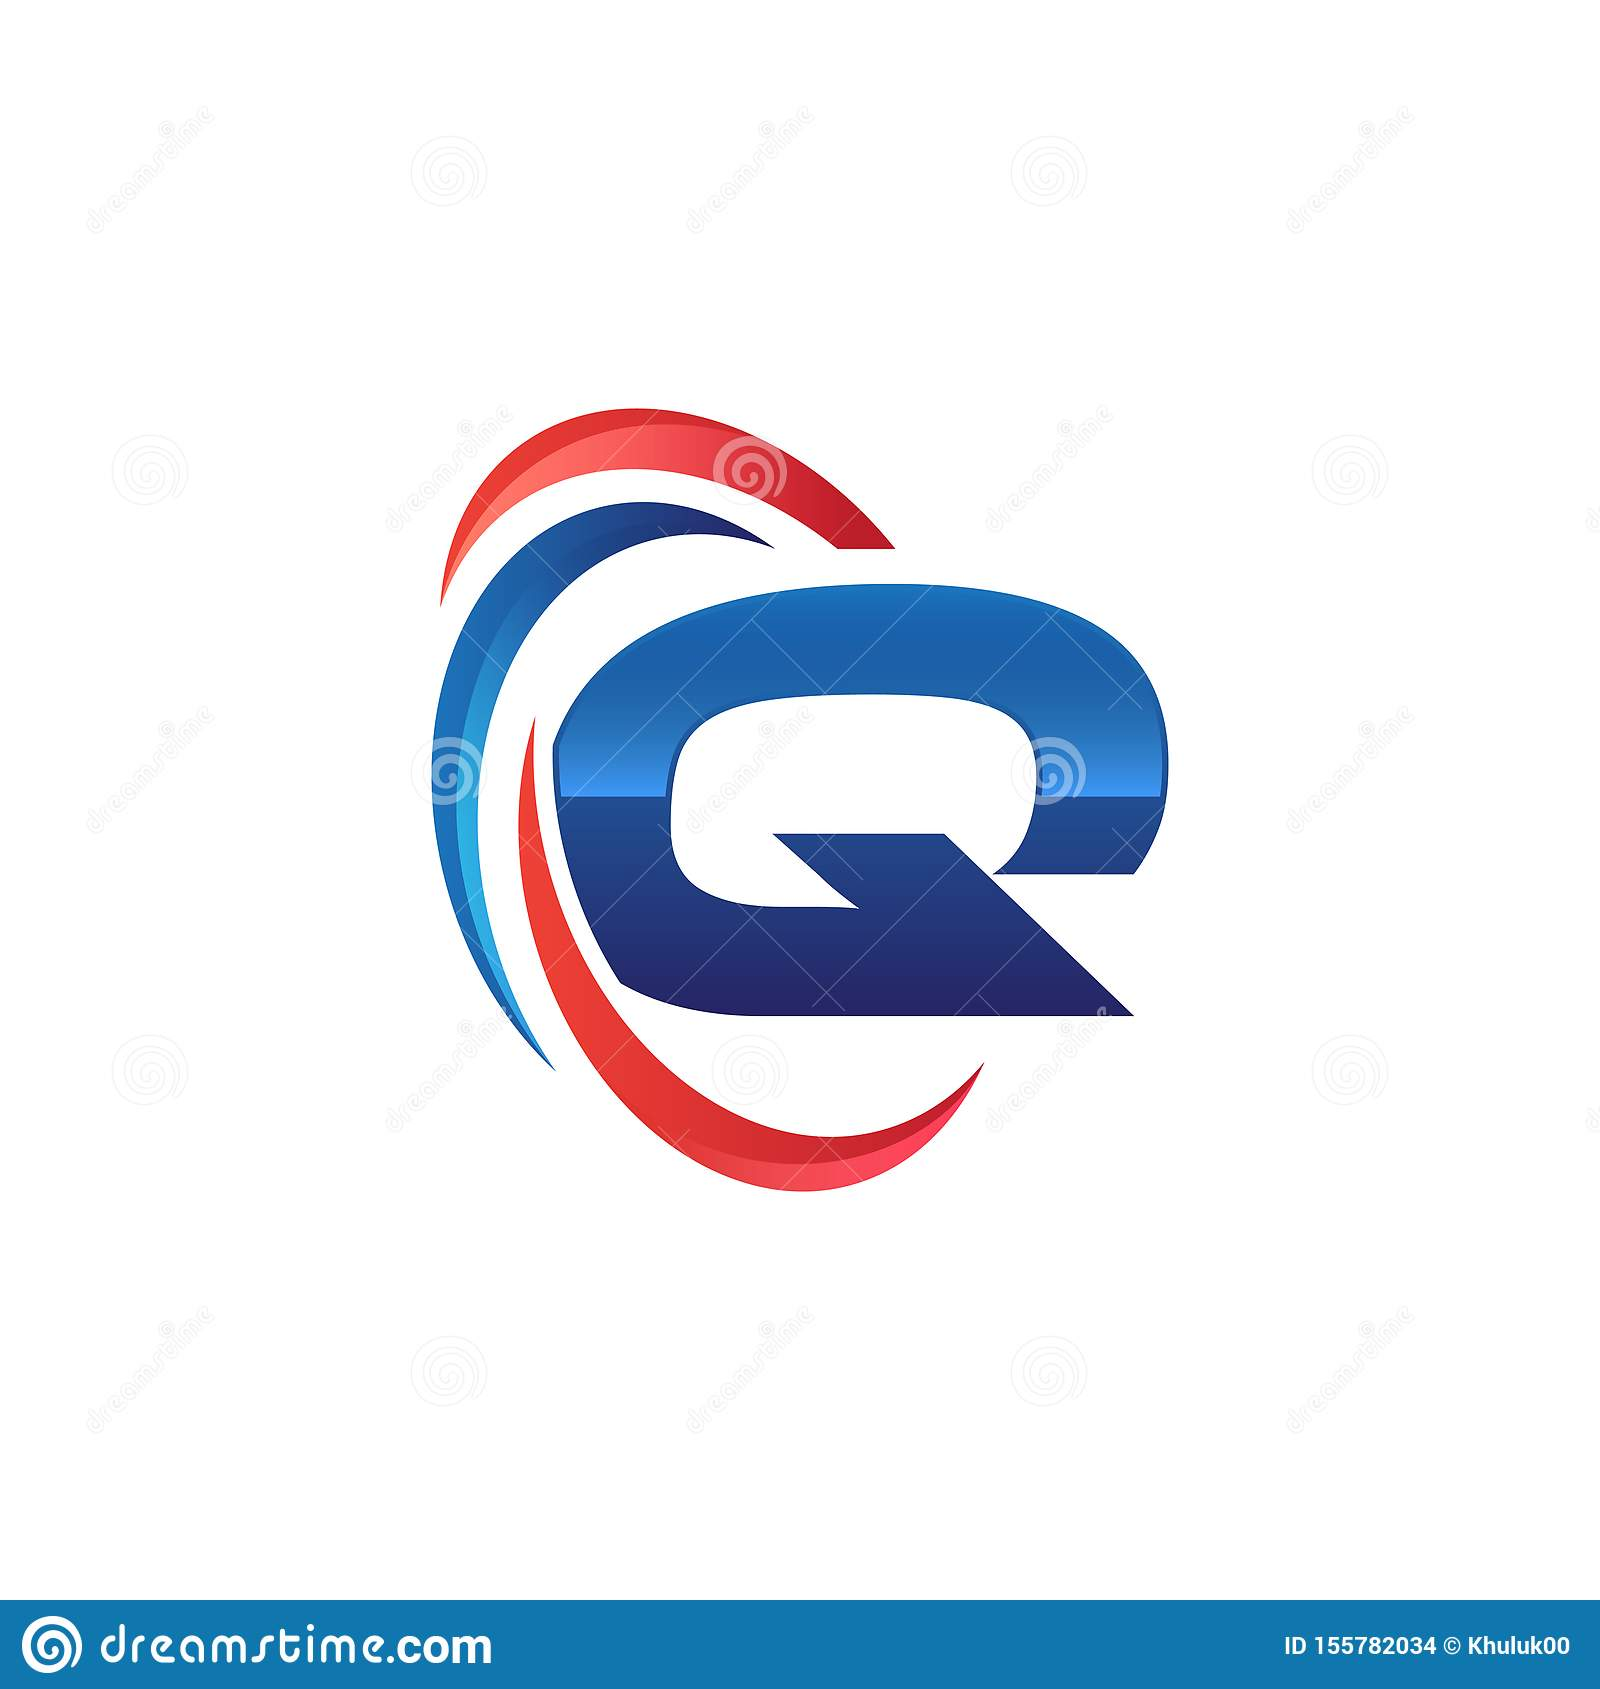 Initial letter Q logo swoosh red and blue